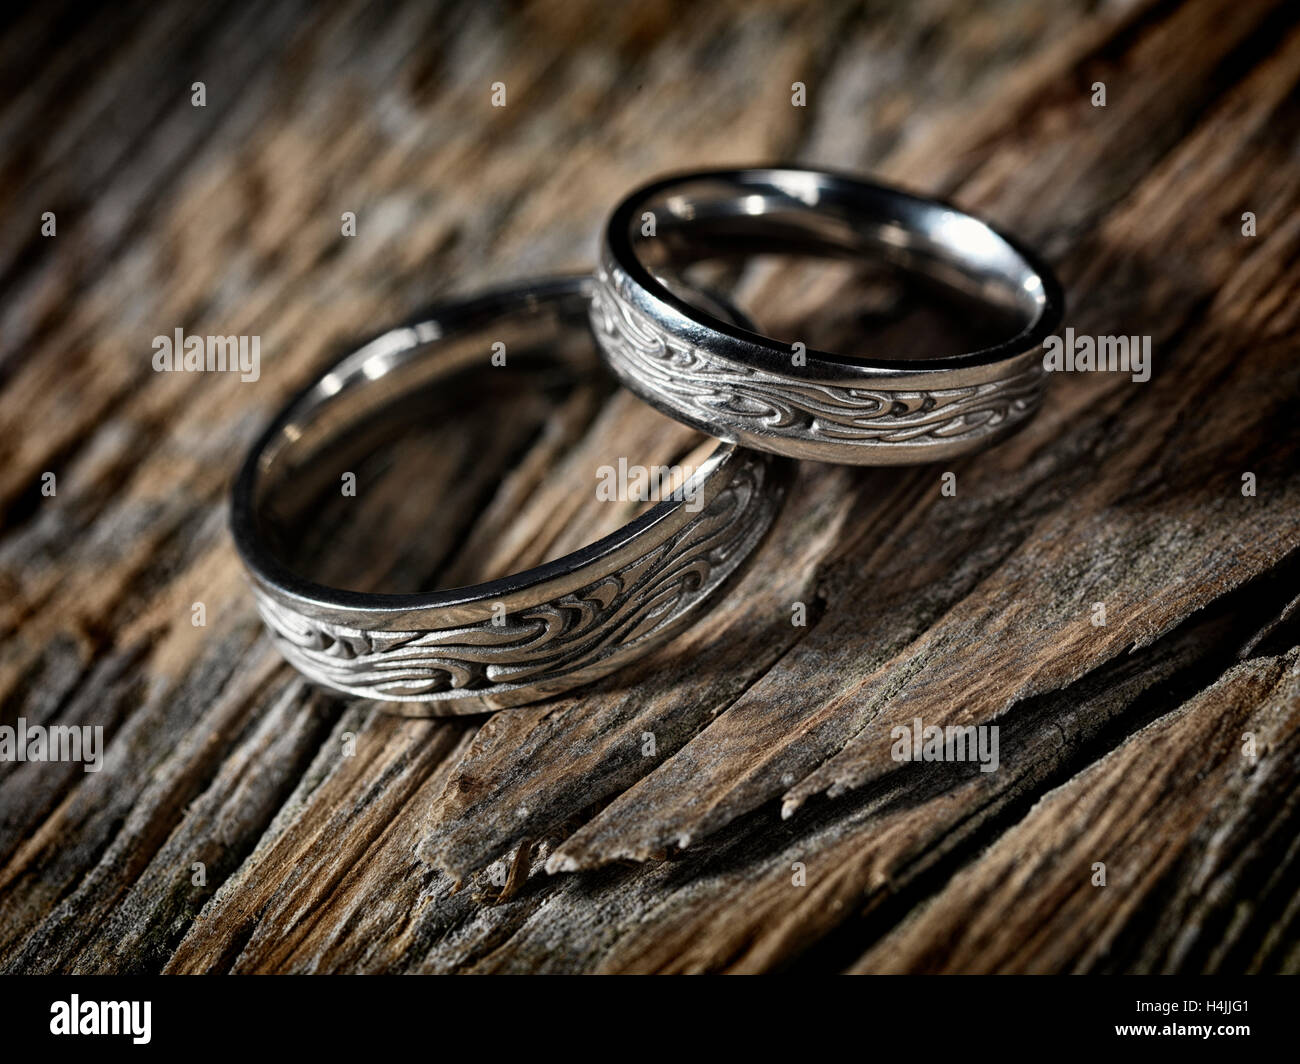 Two White Gold Wedding Rings With Celtic Design On Rustic Wood Background